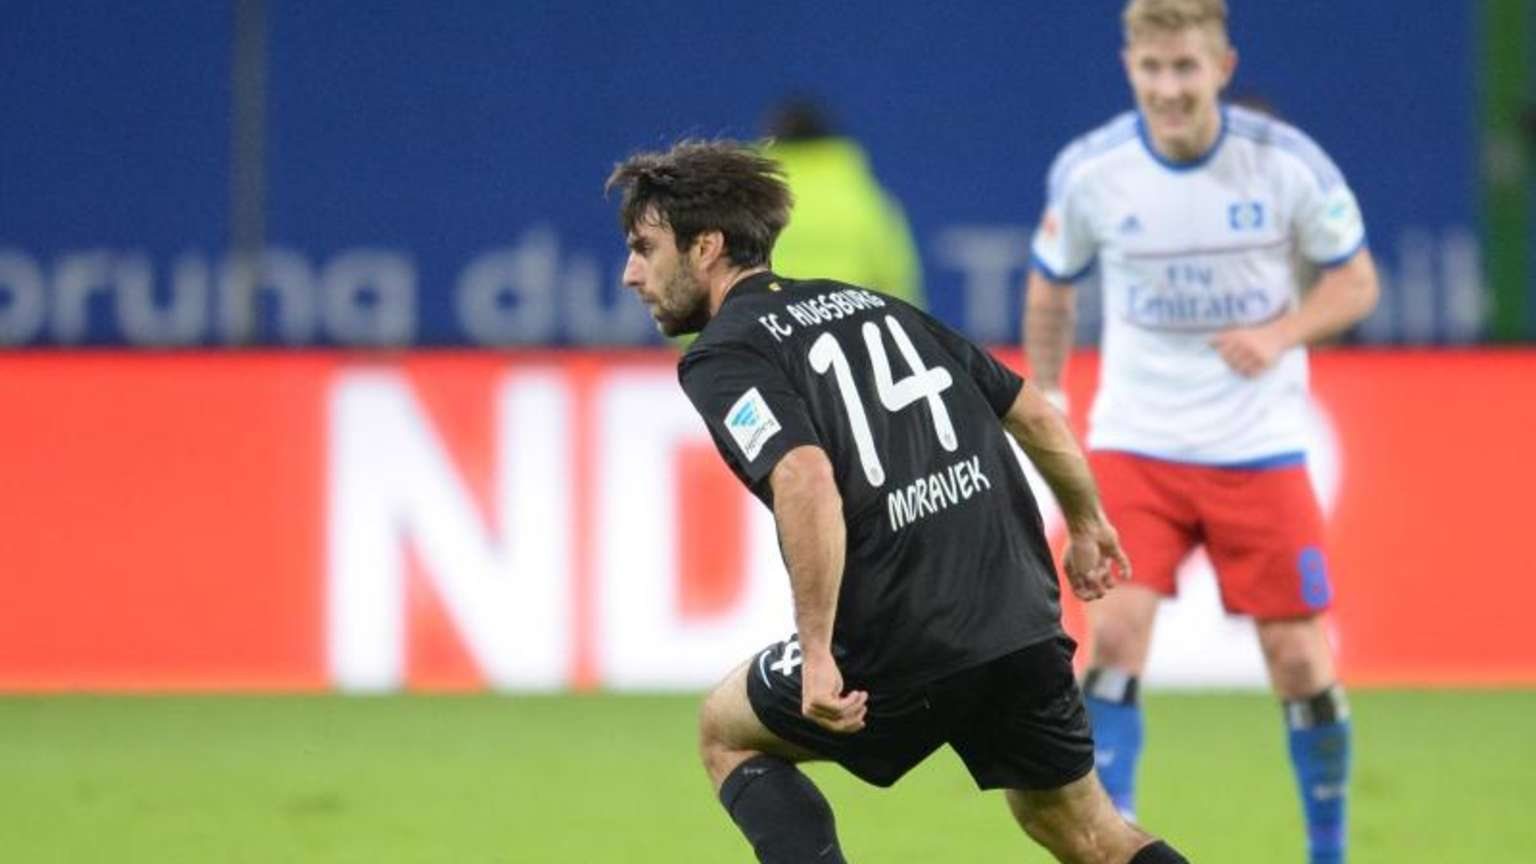 Video: Hamburger SV vs Augsburg